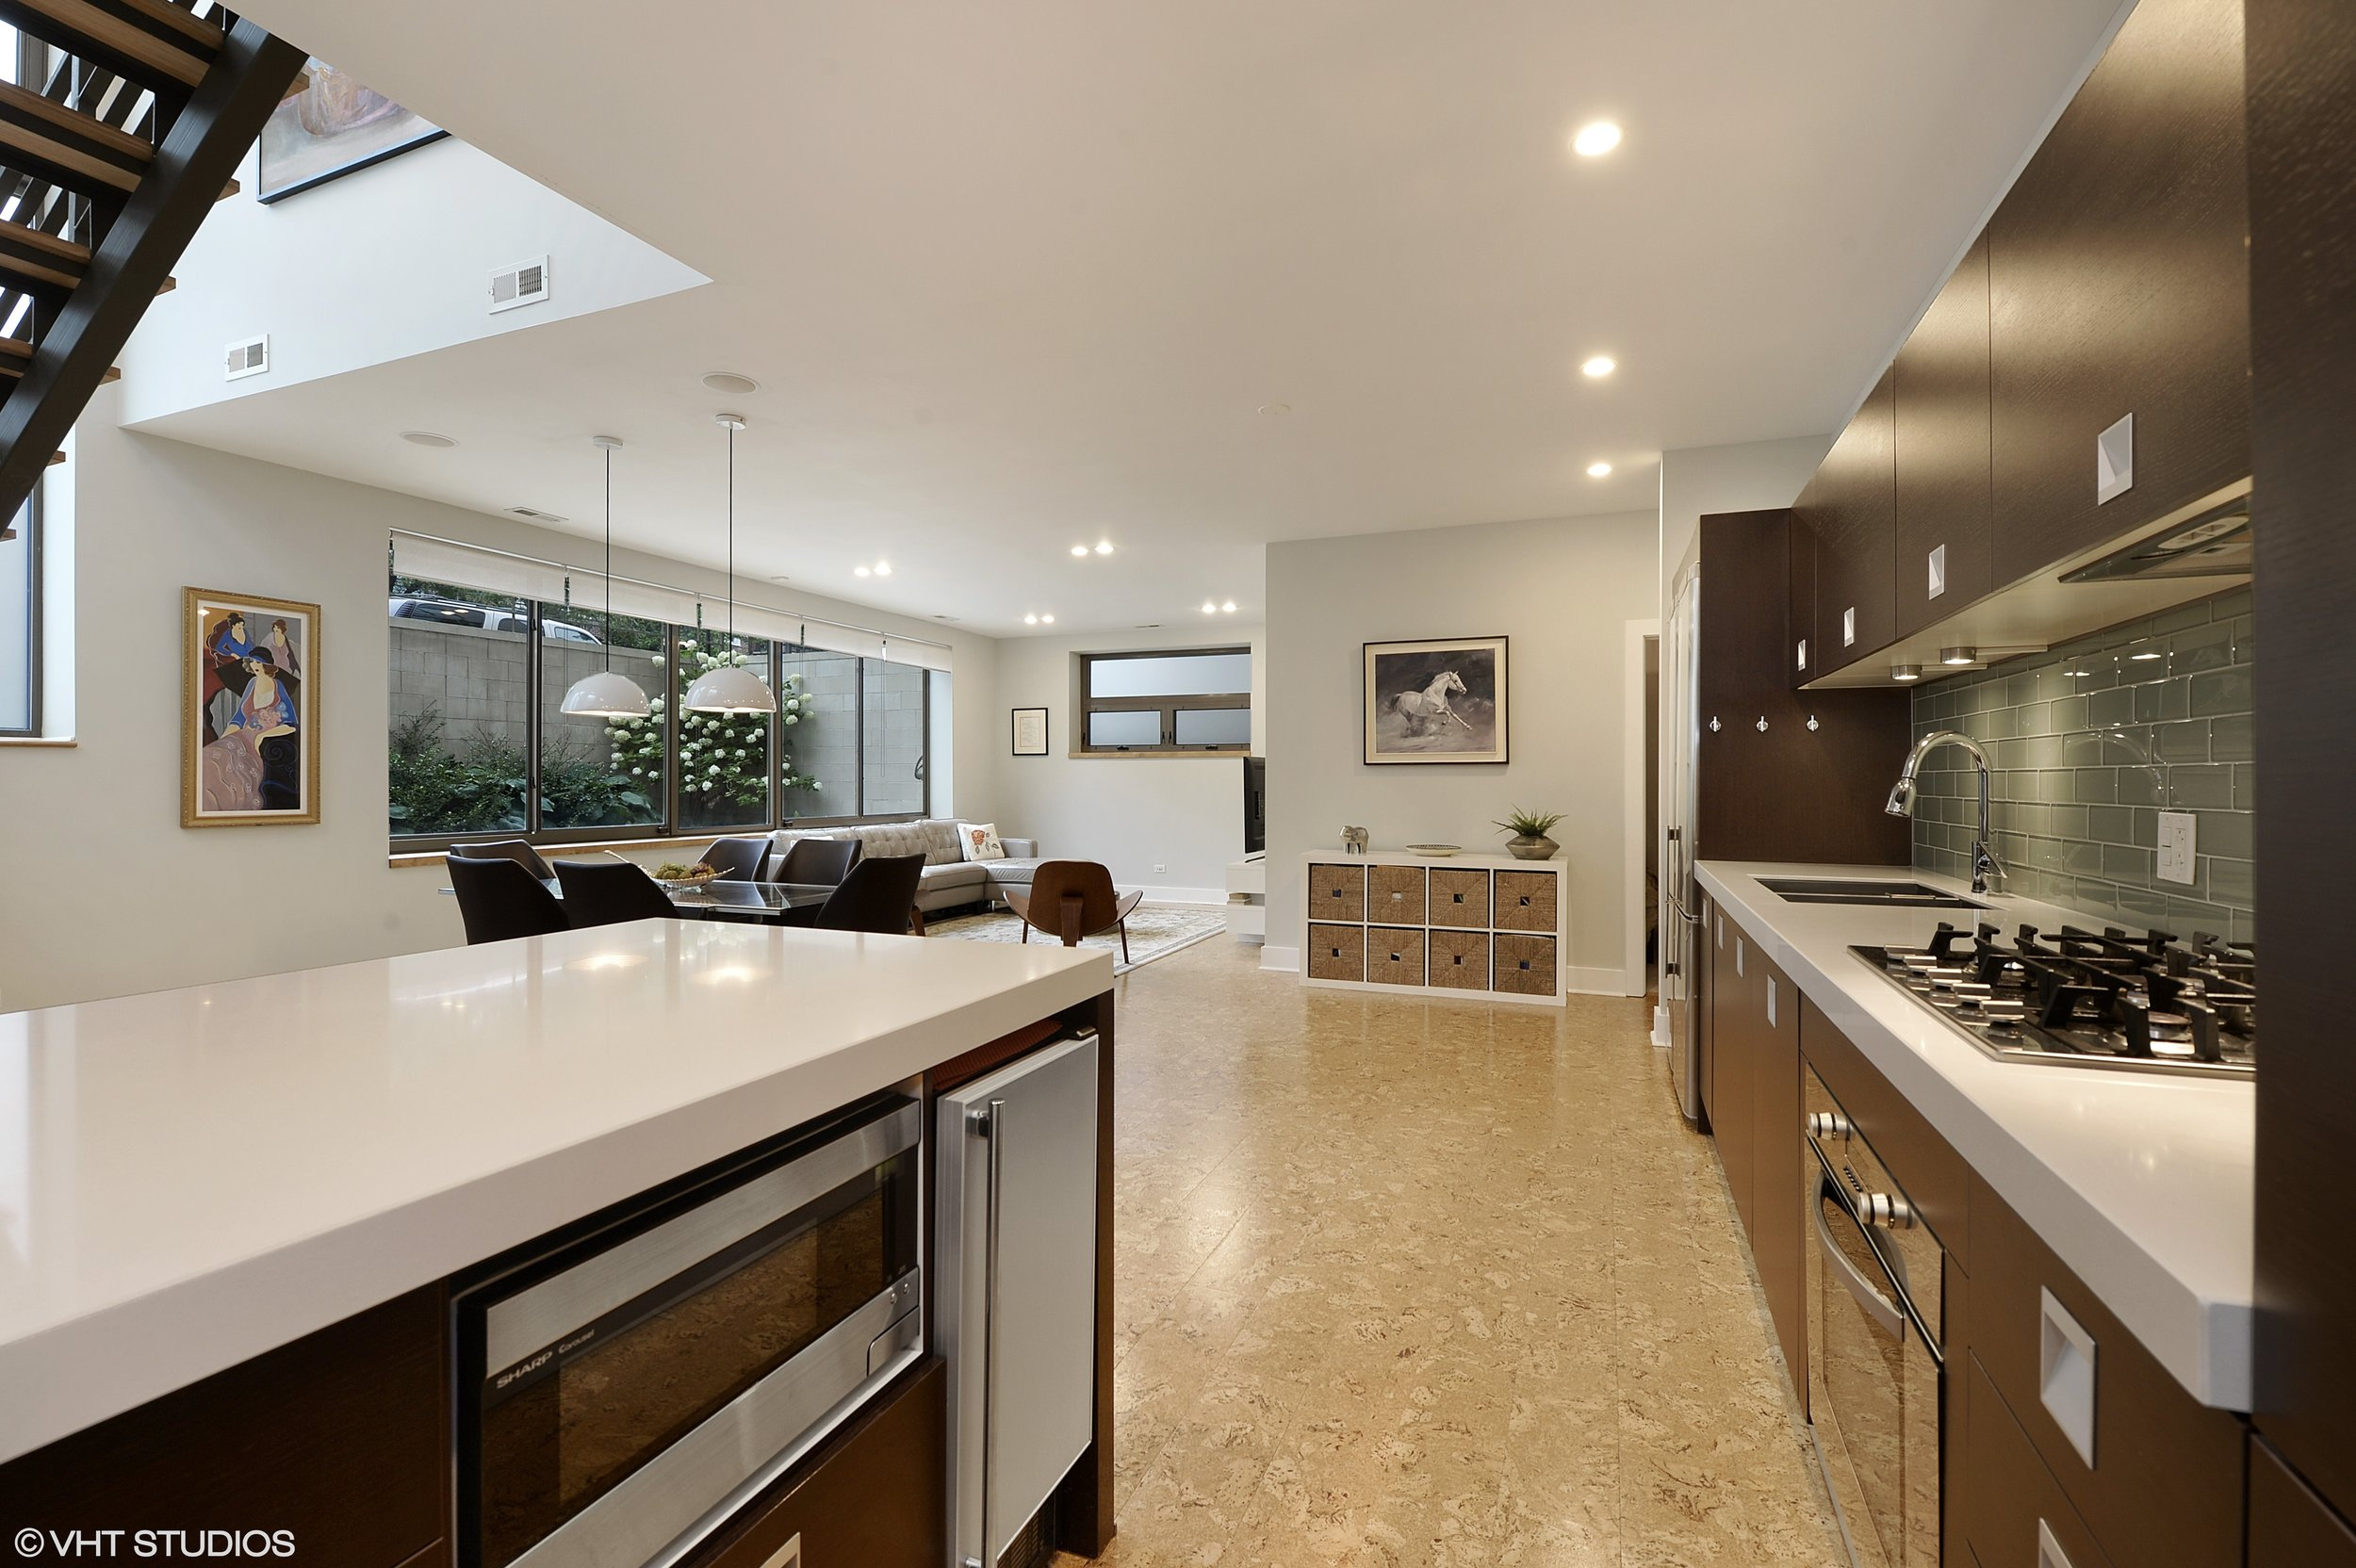 08_1529WestChestnutSt_101_177_Kitchen_HiRes.jpg